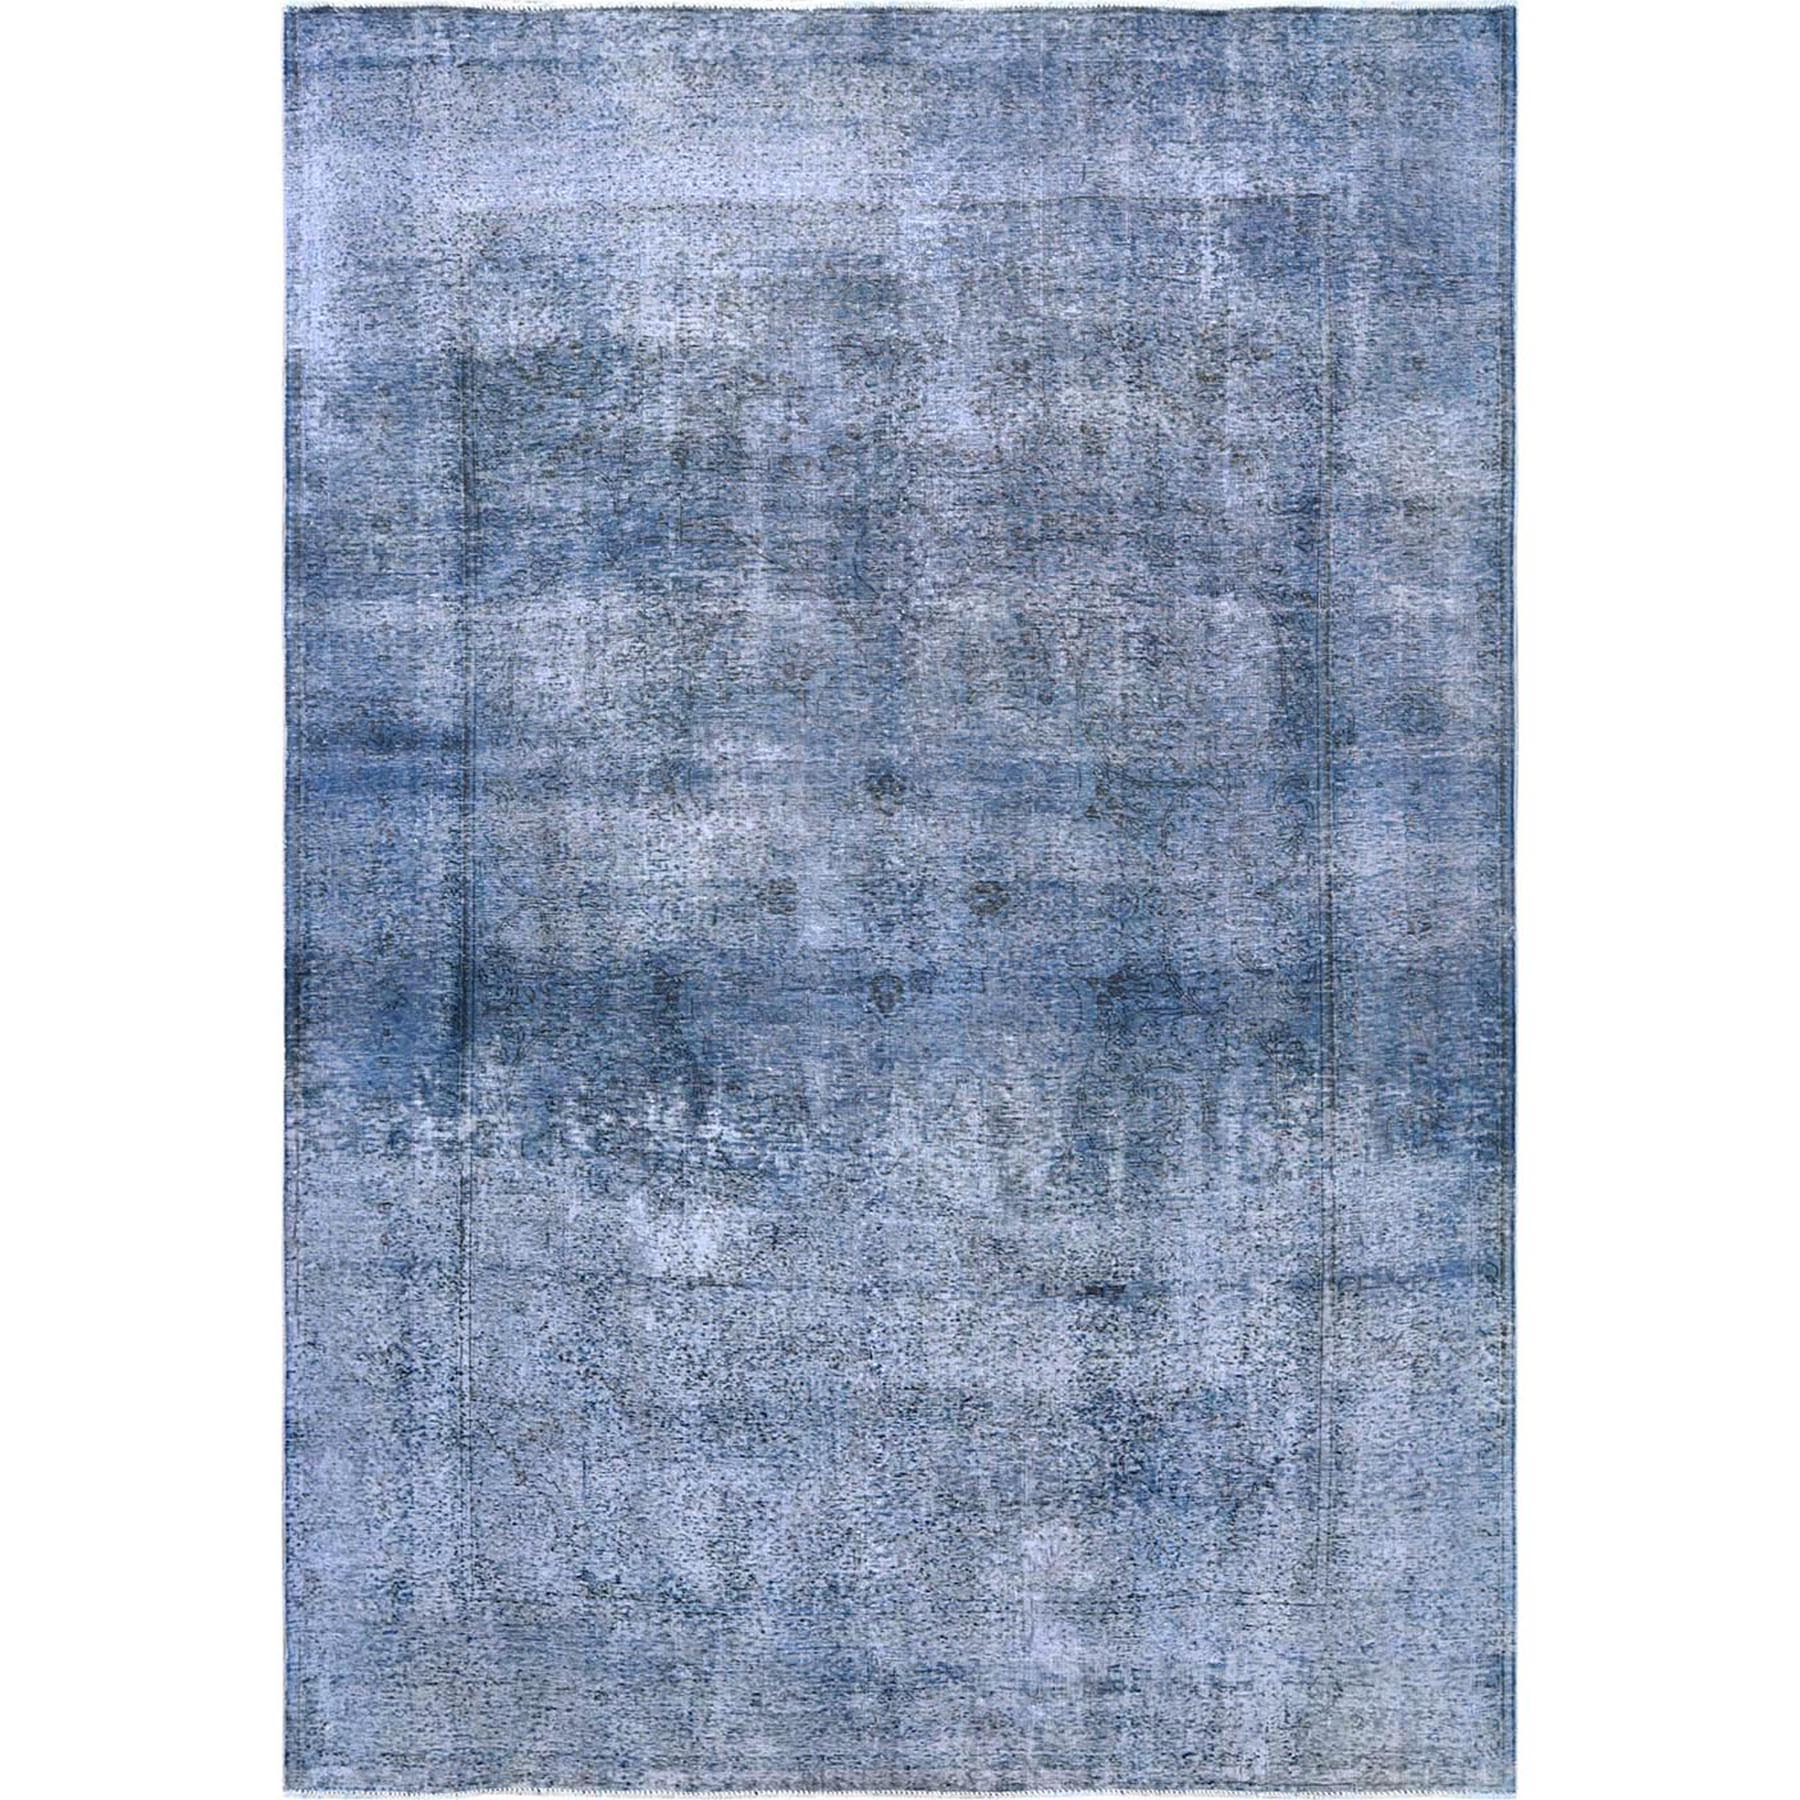 """8'7""""X11'2"""" Blue Clean Pure Wool Bohemian Worn Down Vintage Look Persian Tabriz All Over Design Hand Knotted Oriental Rug moa60cca"""